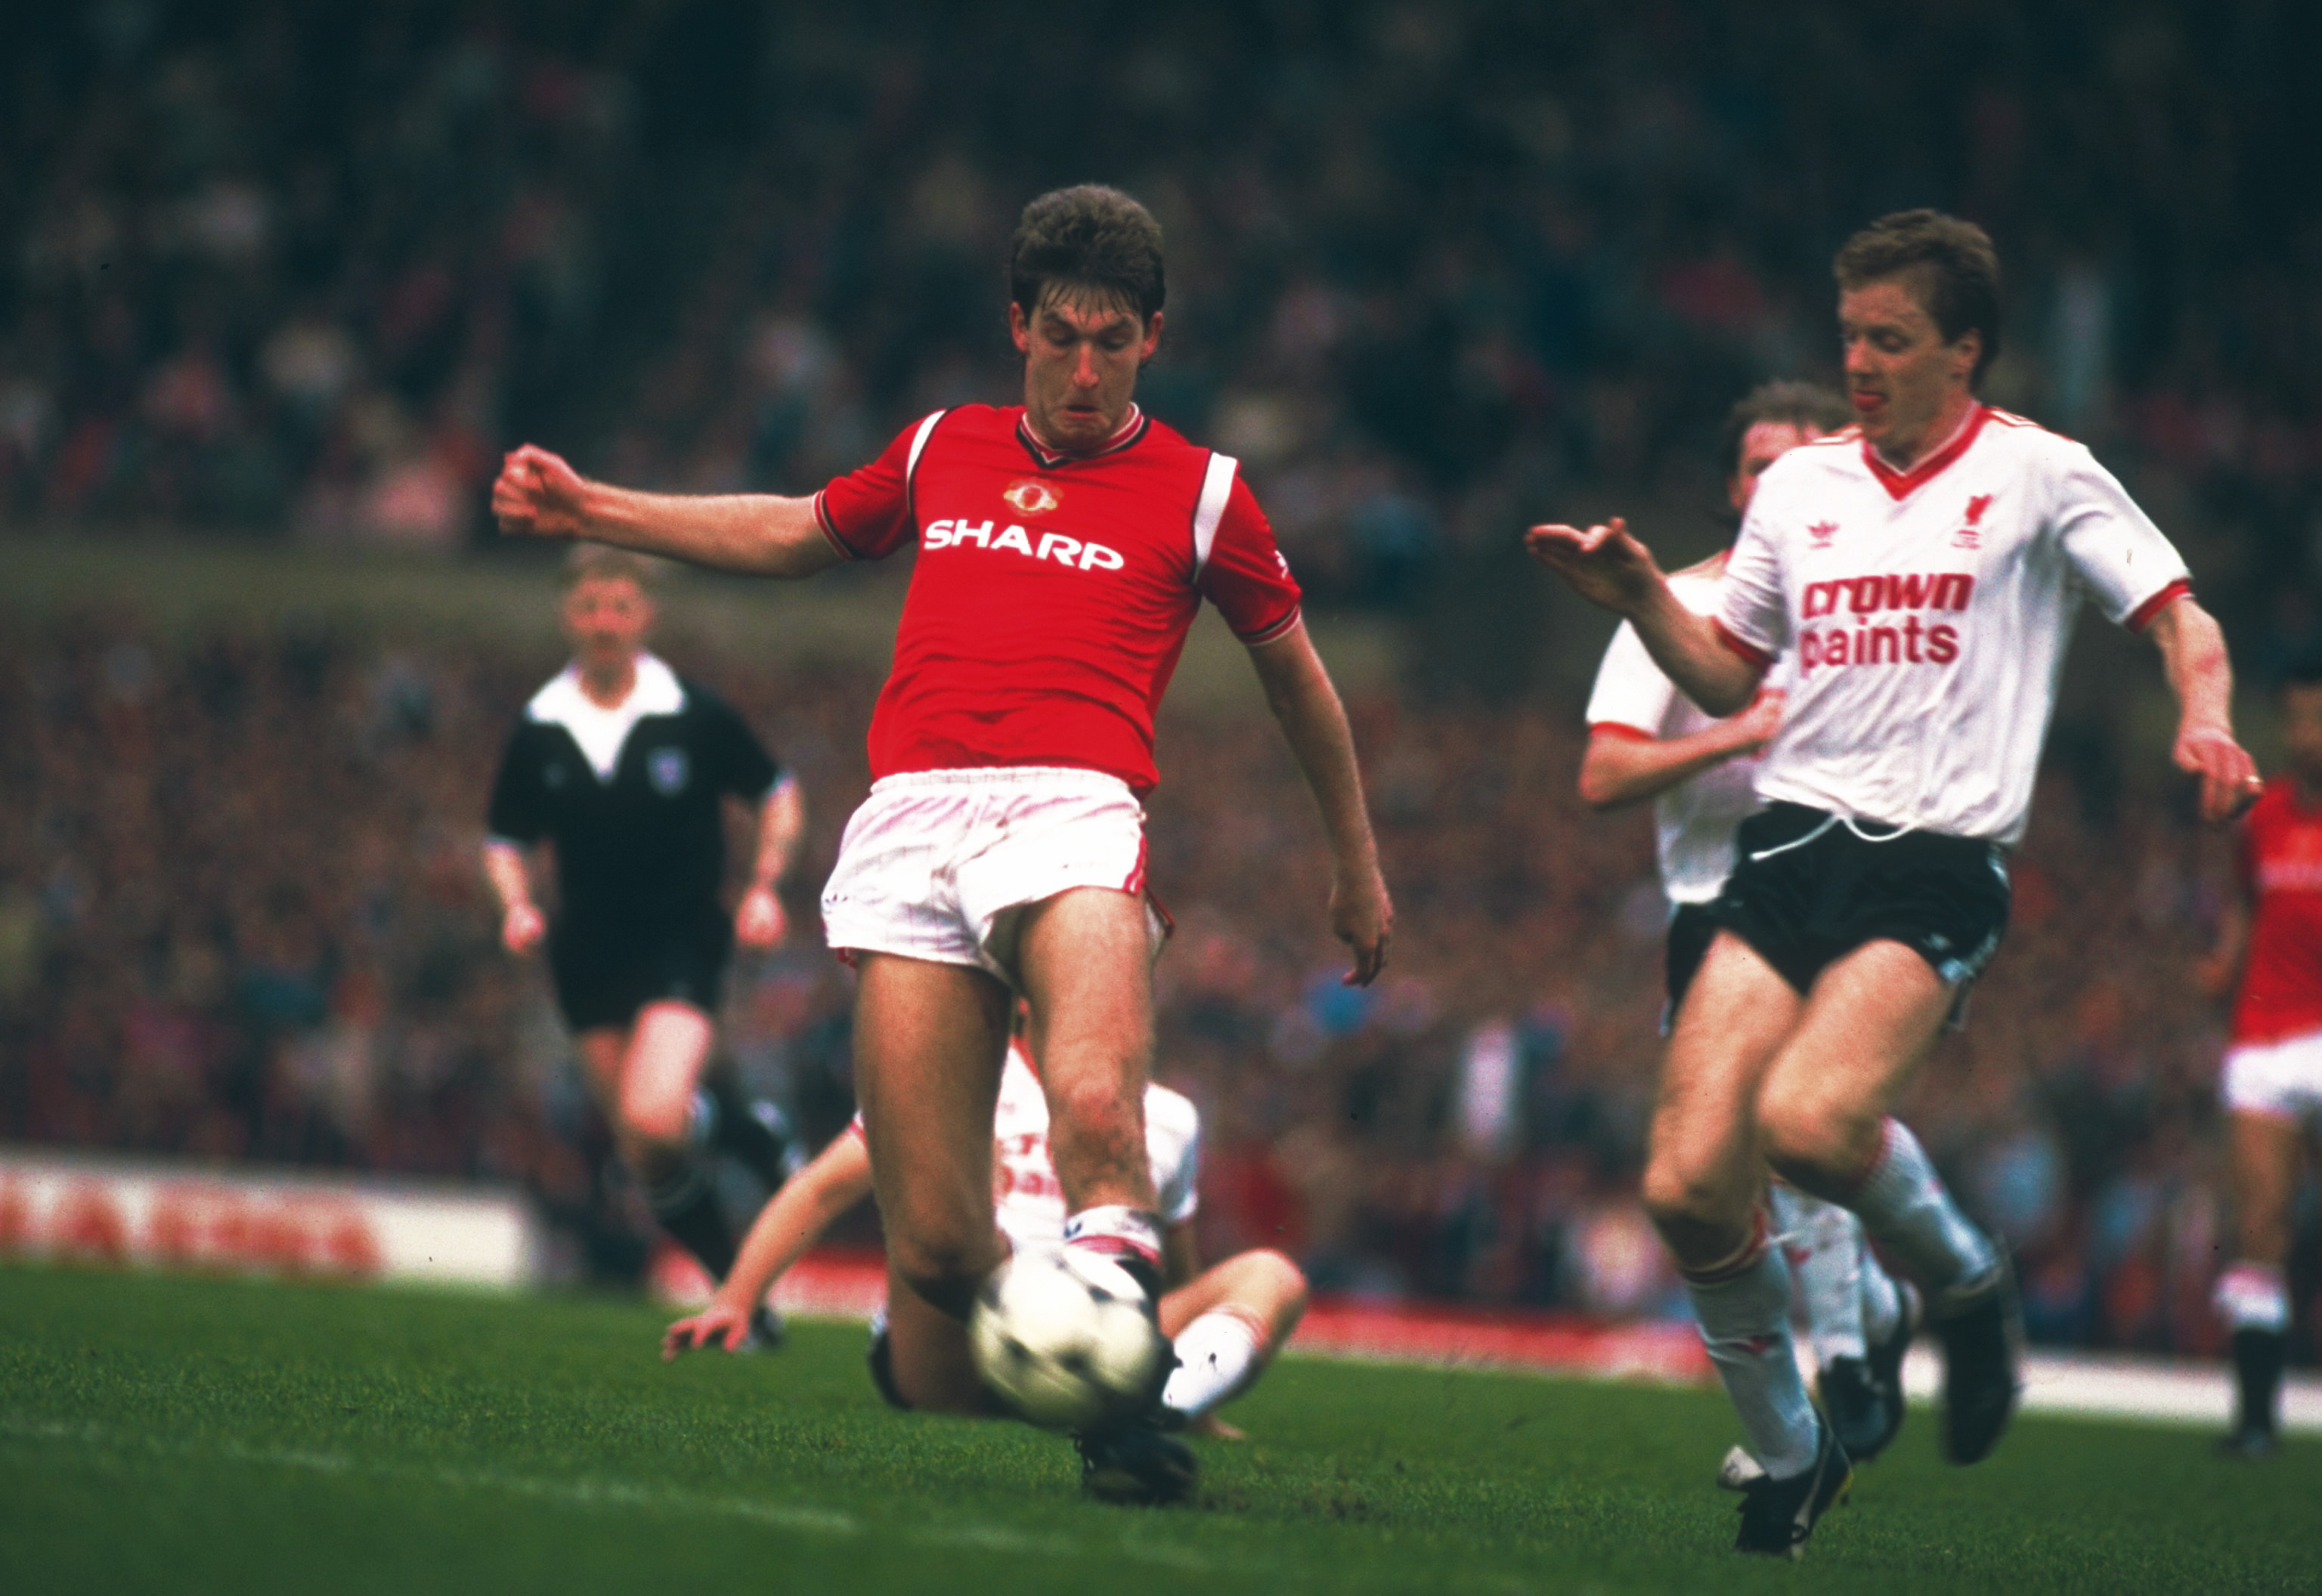 Norman Whiteside world beater at 17 retired by 26